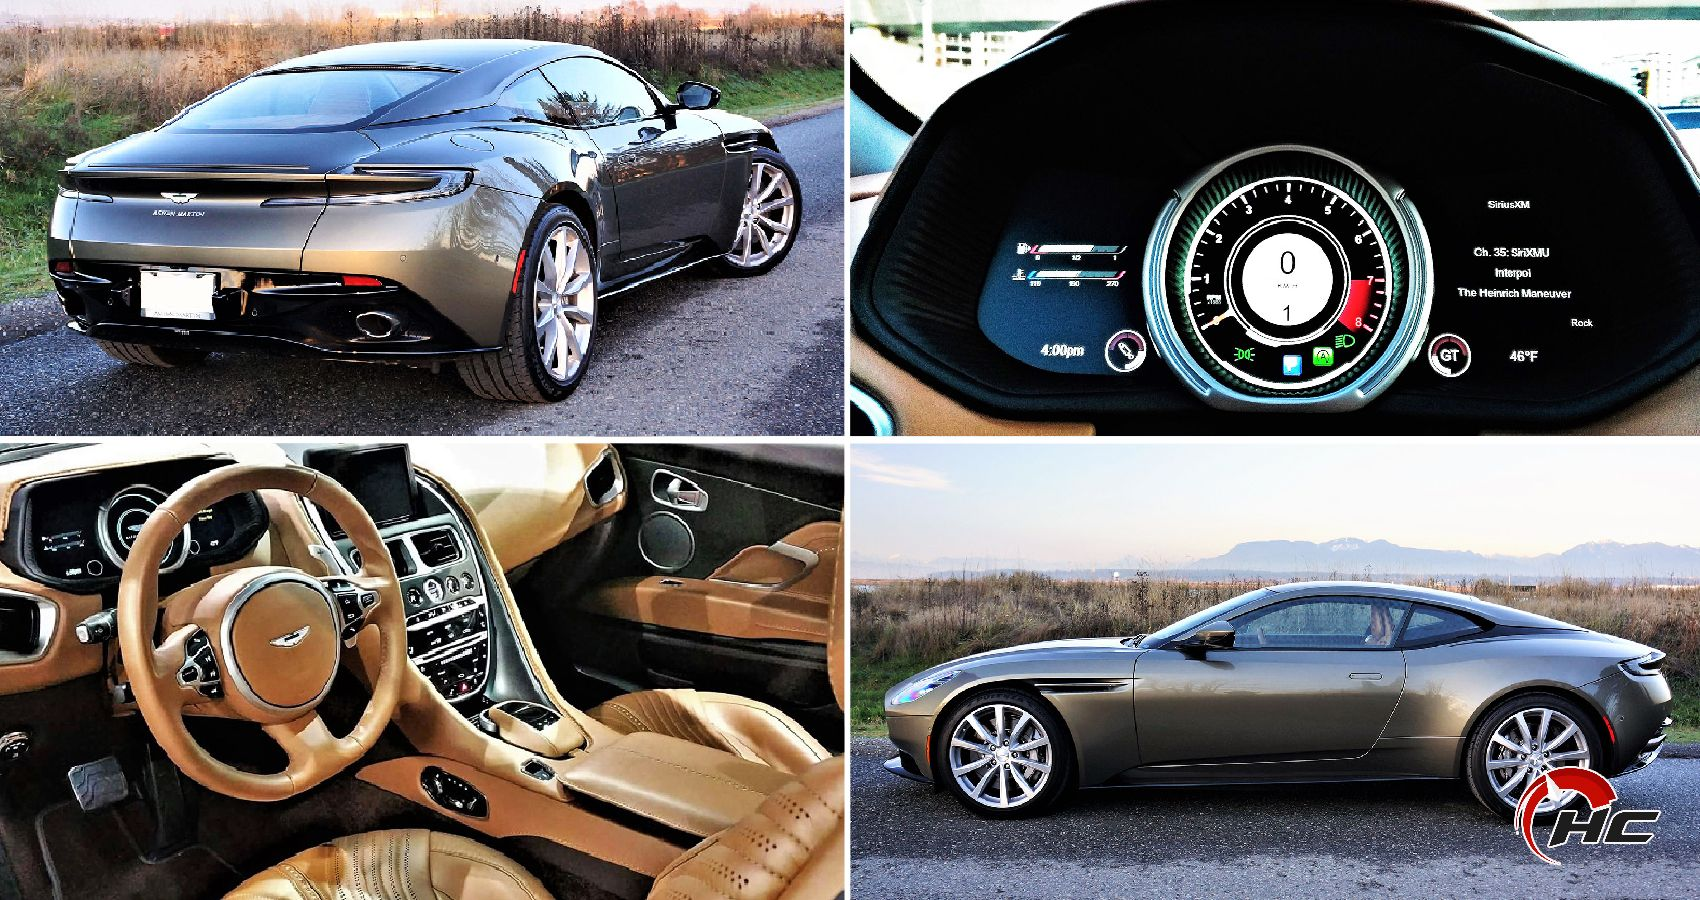 2020 Aston Martin Db11 V8 Review The Beauty And The Beast Within